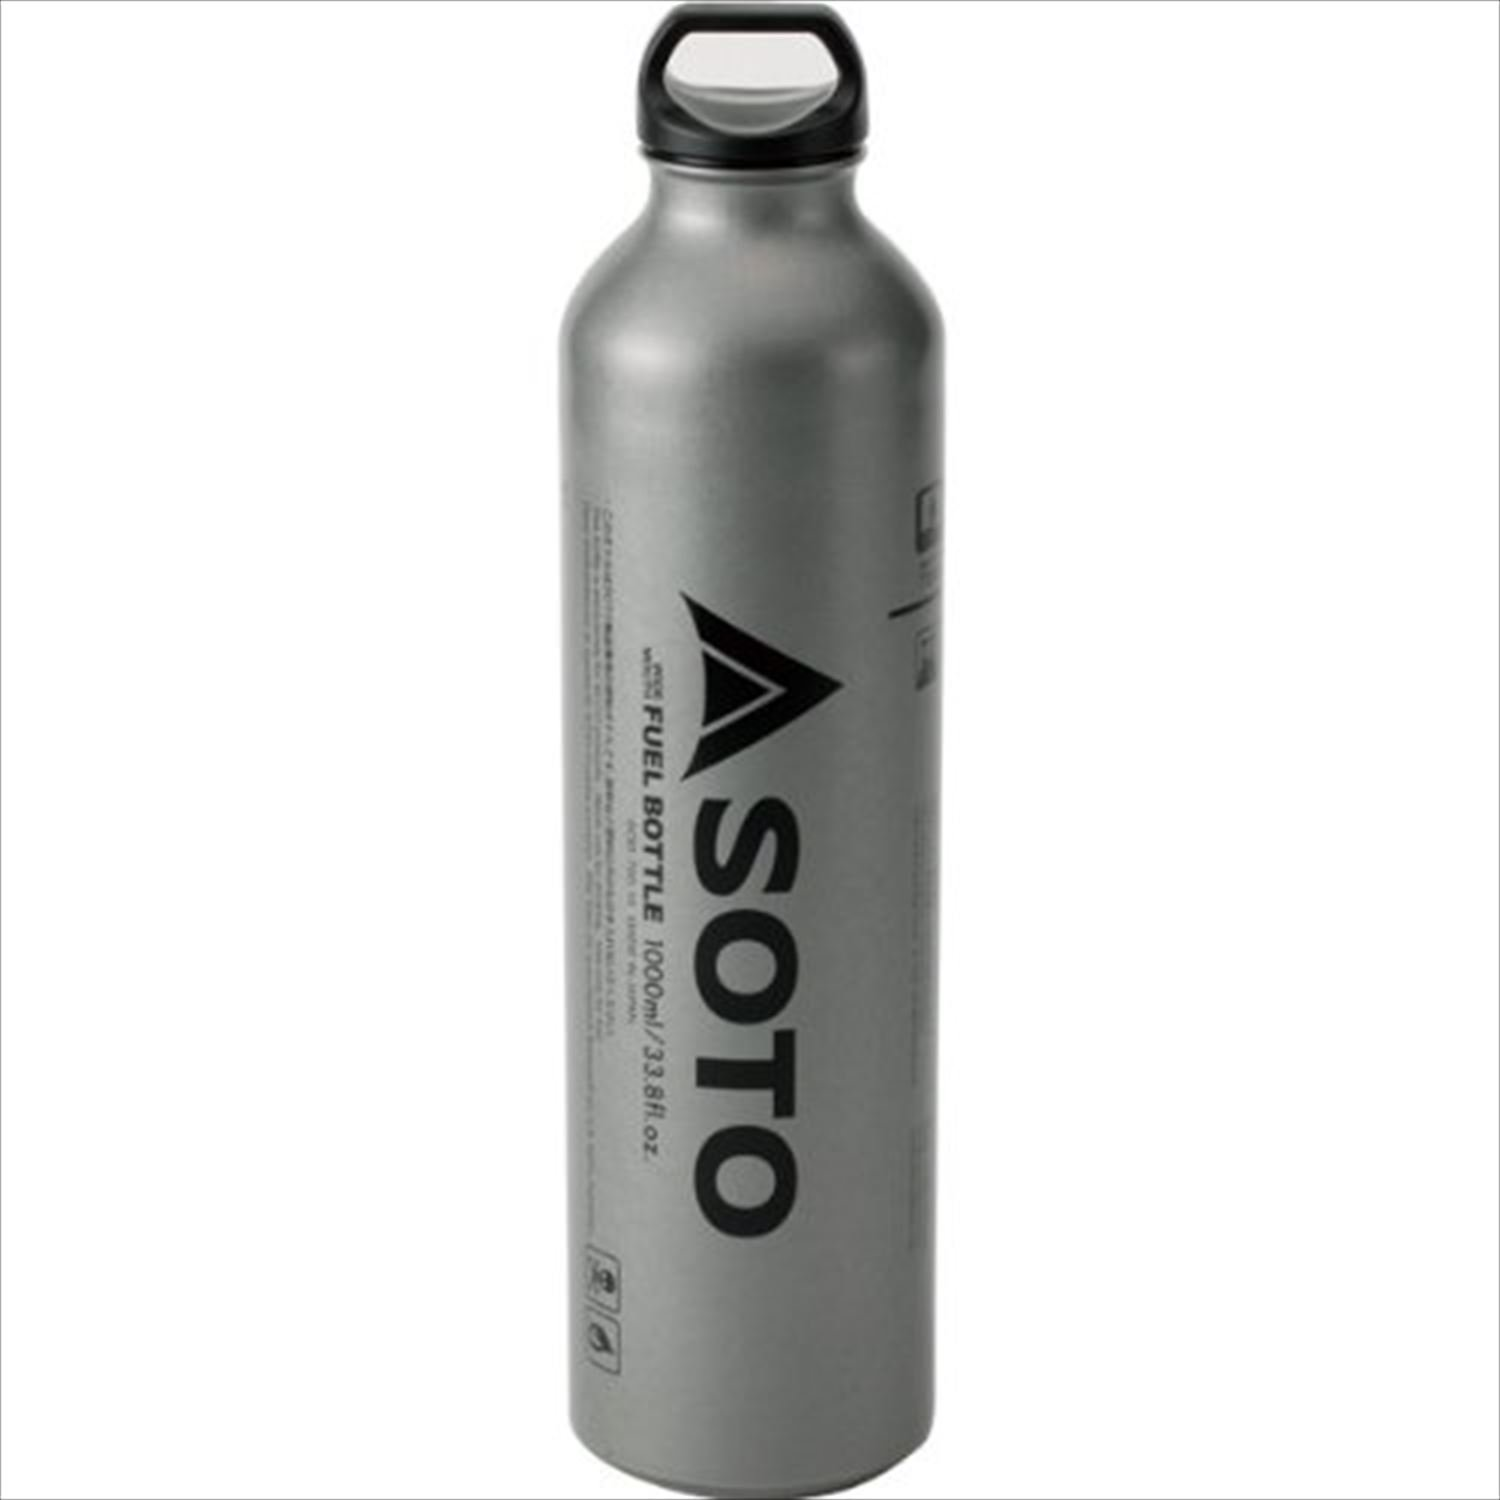 SOTO SOD-700-10 Fuel Bottle for Muka Stove 1 Litre Silver